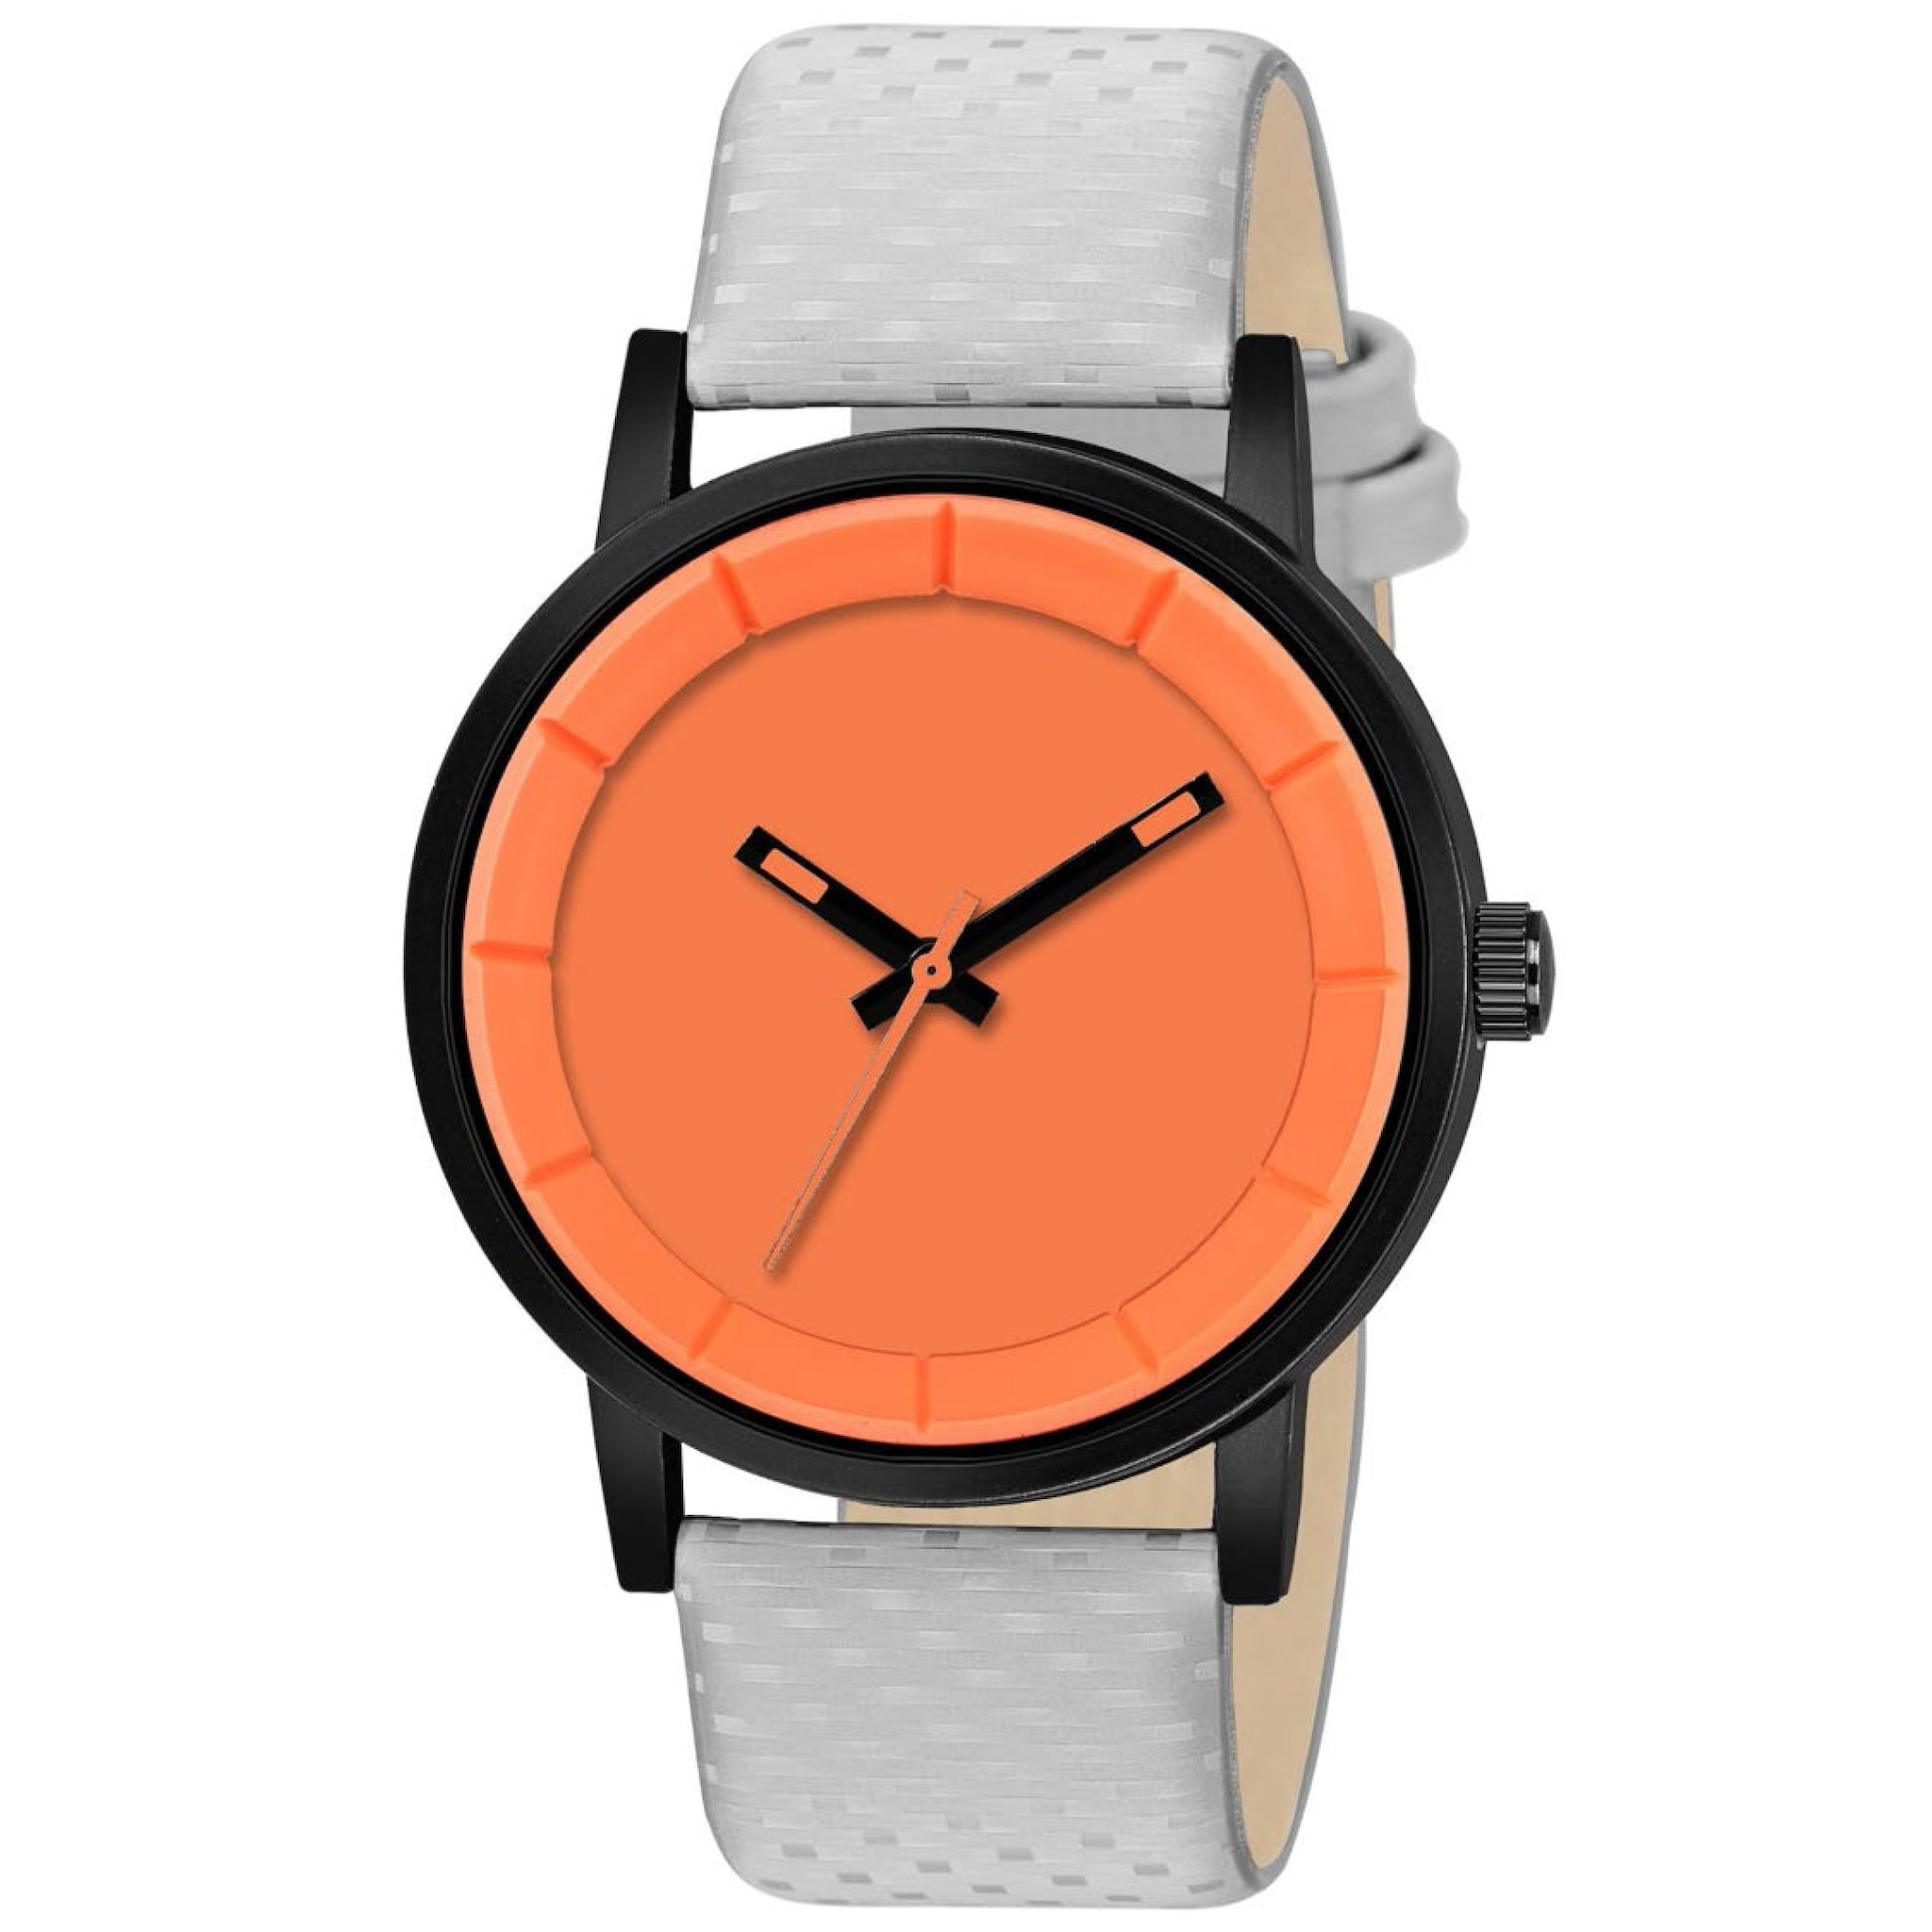 Fashion Now New Look Formal Men Wrist Watch (Orange)